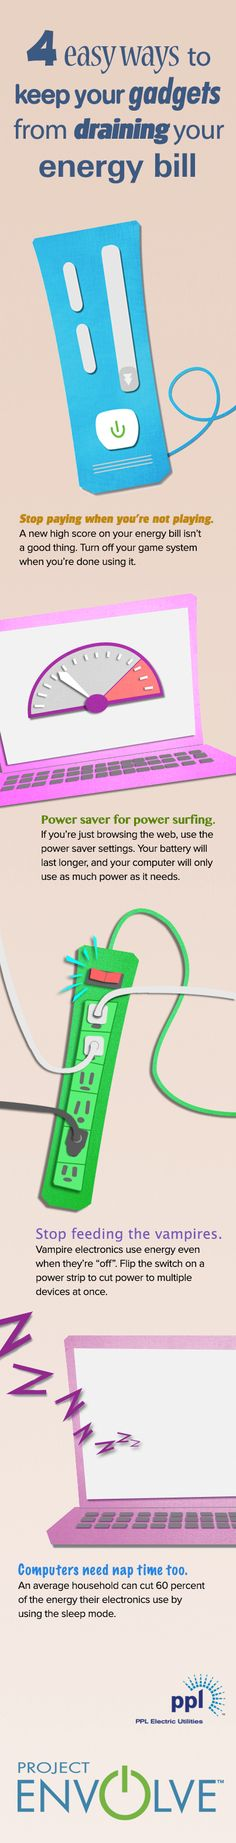 How Much Energy Do Your Gadgets Use? (And How You Can Lower It) #ProjectEnvolve #GetEnvolved